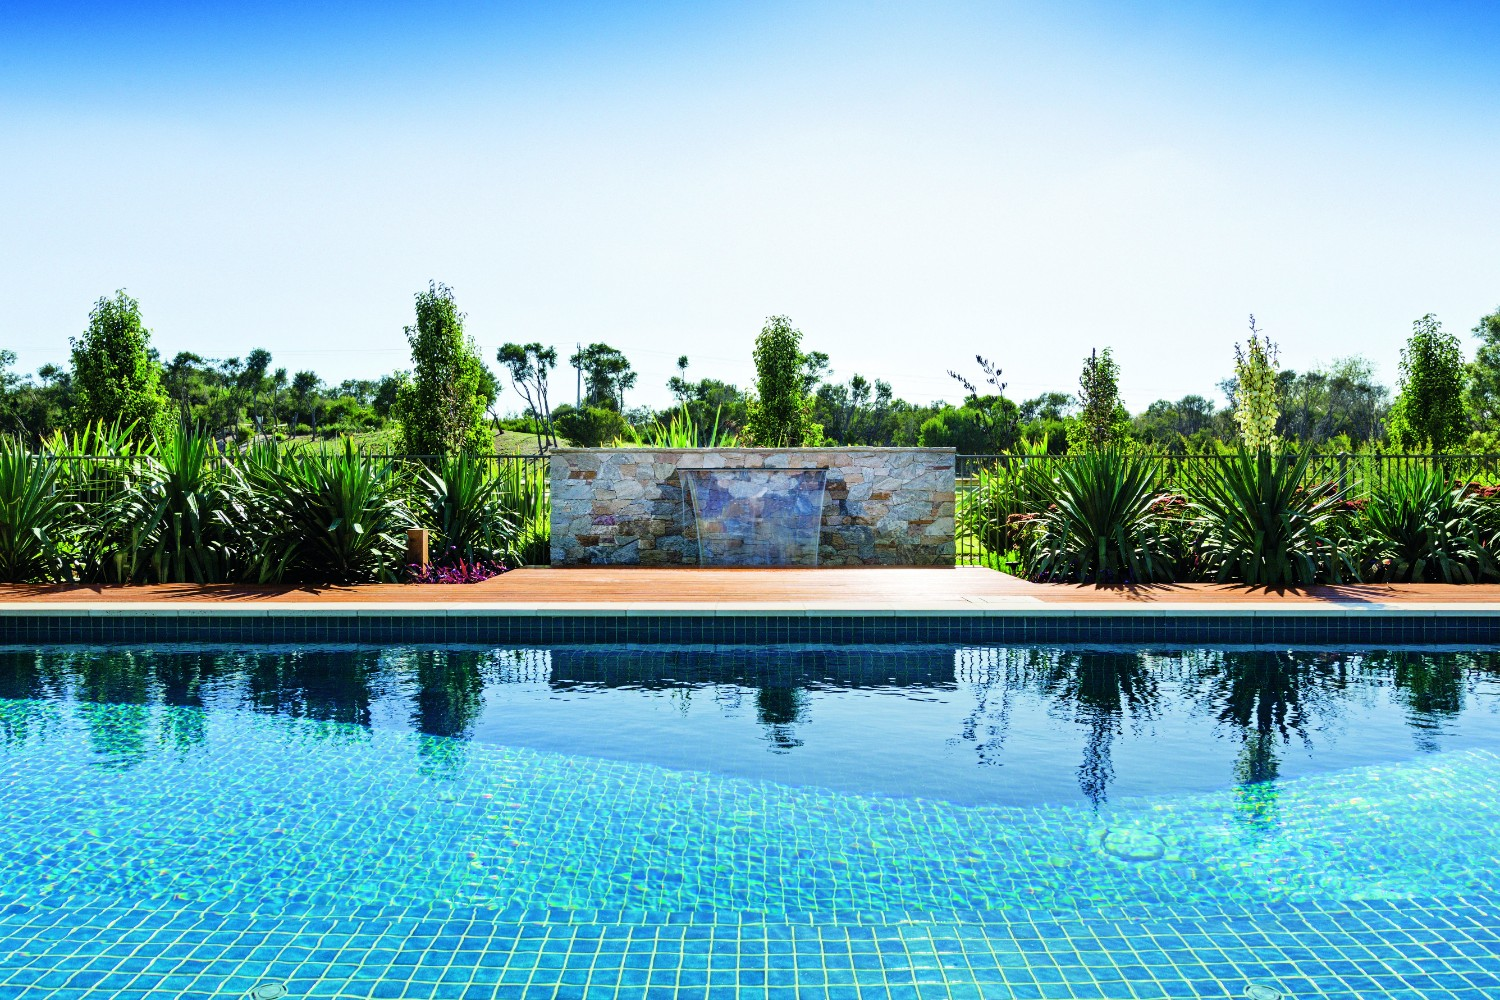 Country pool escape: rural tranquility - panoramic country view with pool in foreground